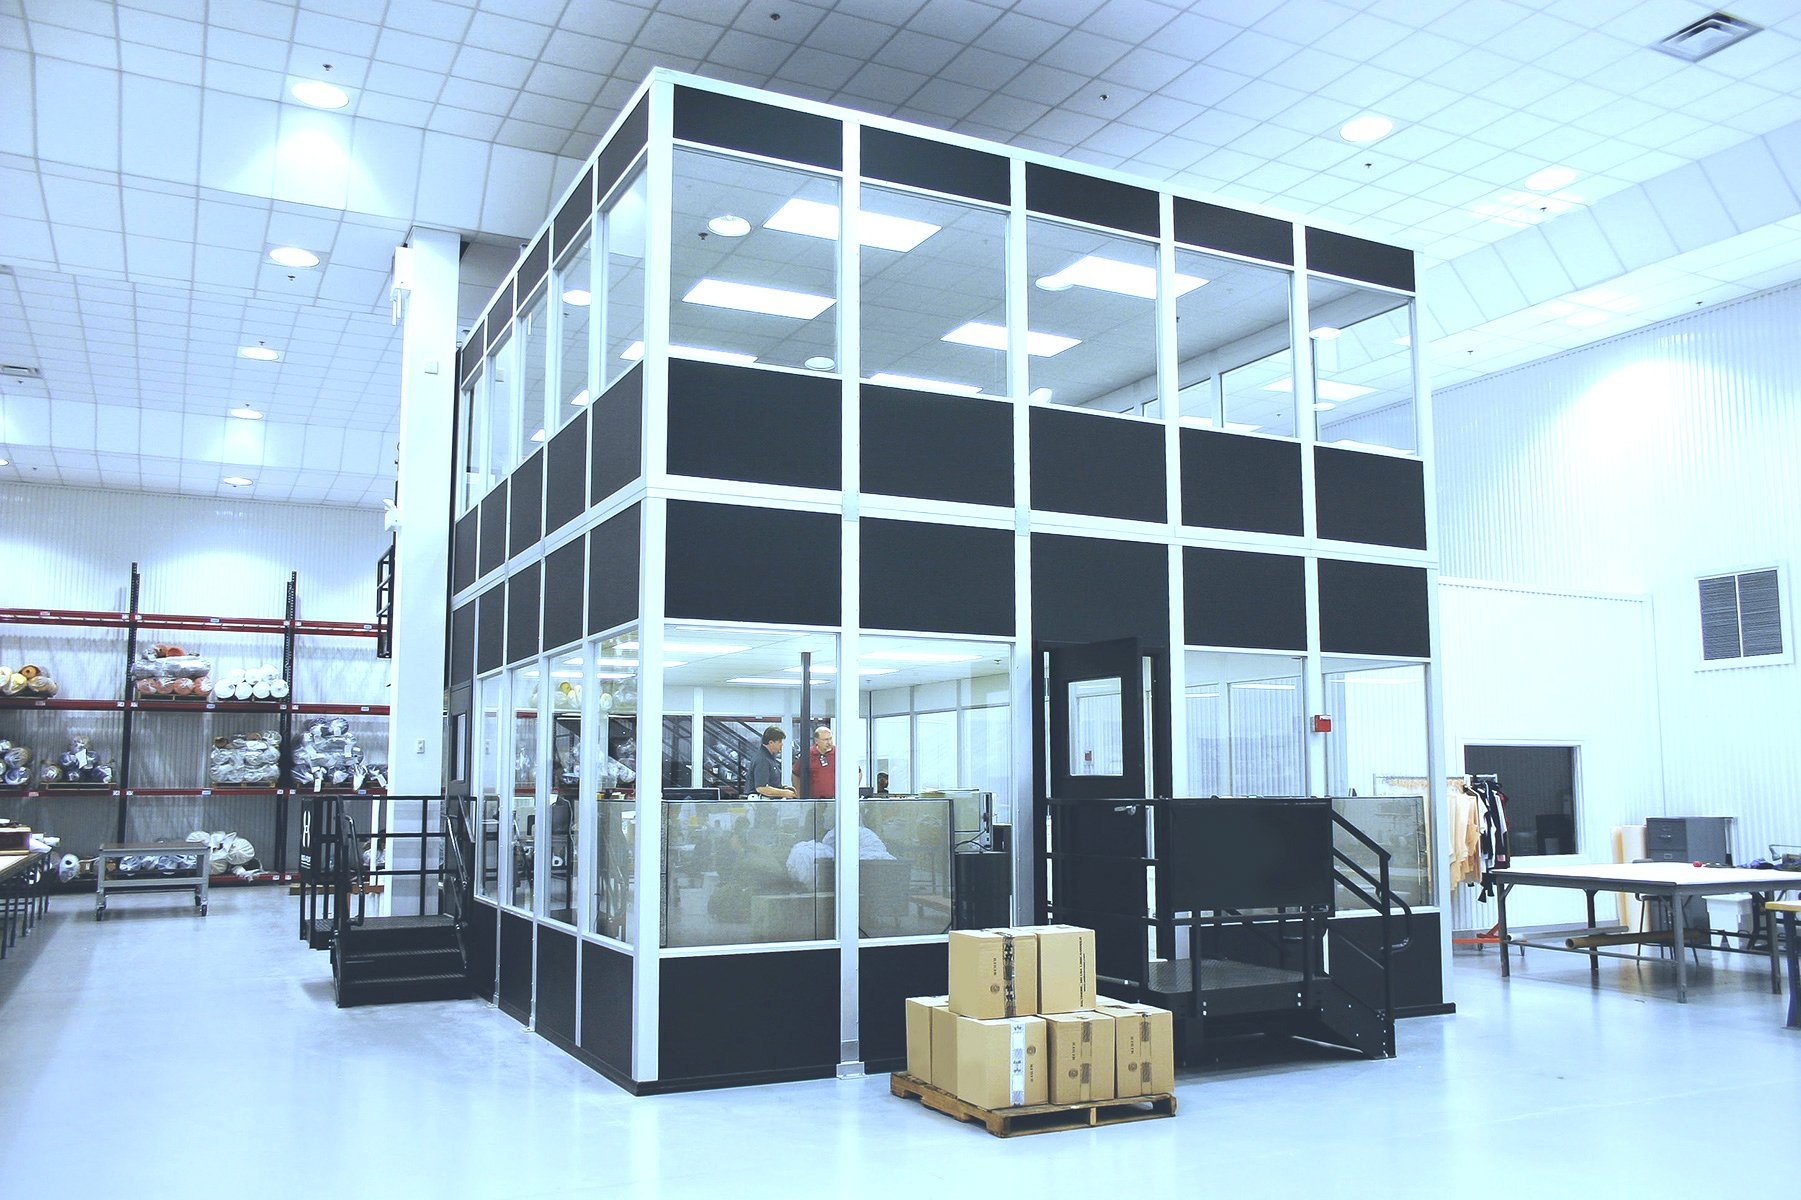 2 floor modular office installation with 360 degree windowed view of facility